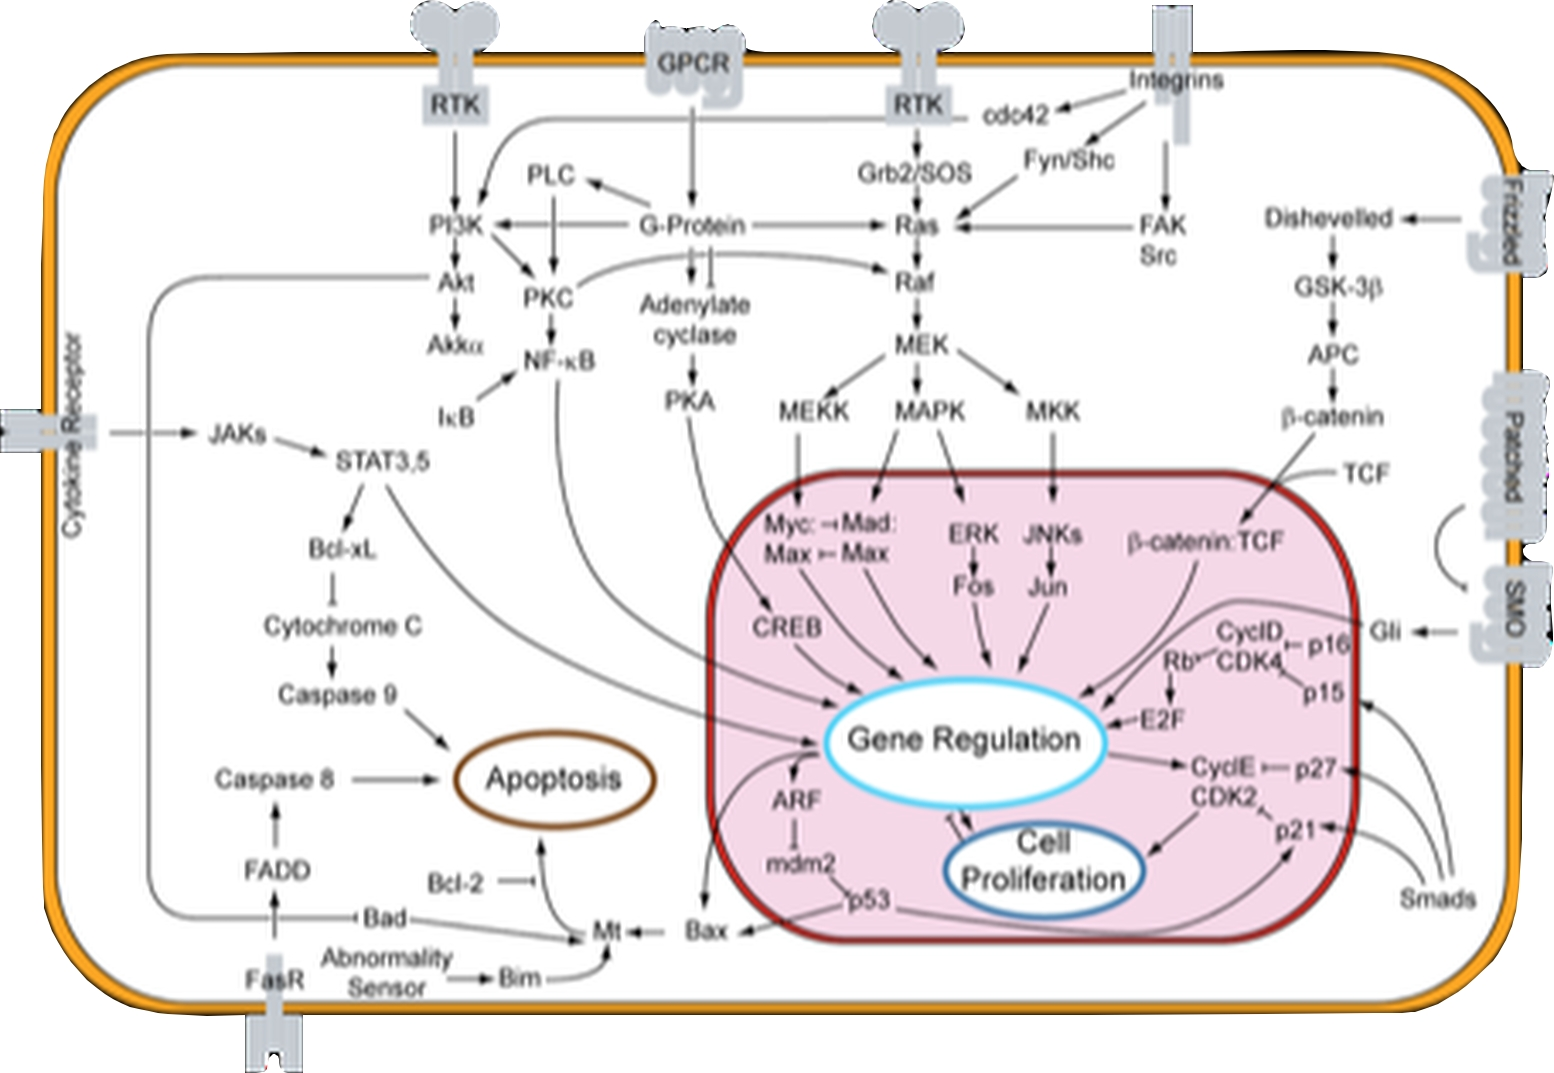 Overview of signal transduction pathway.  Ciick on image to expand